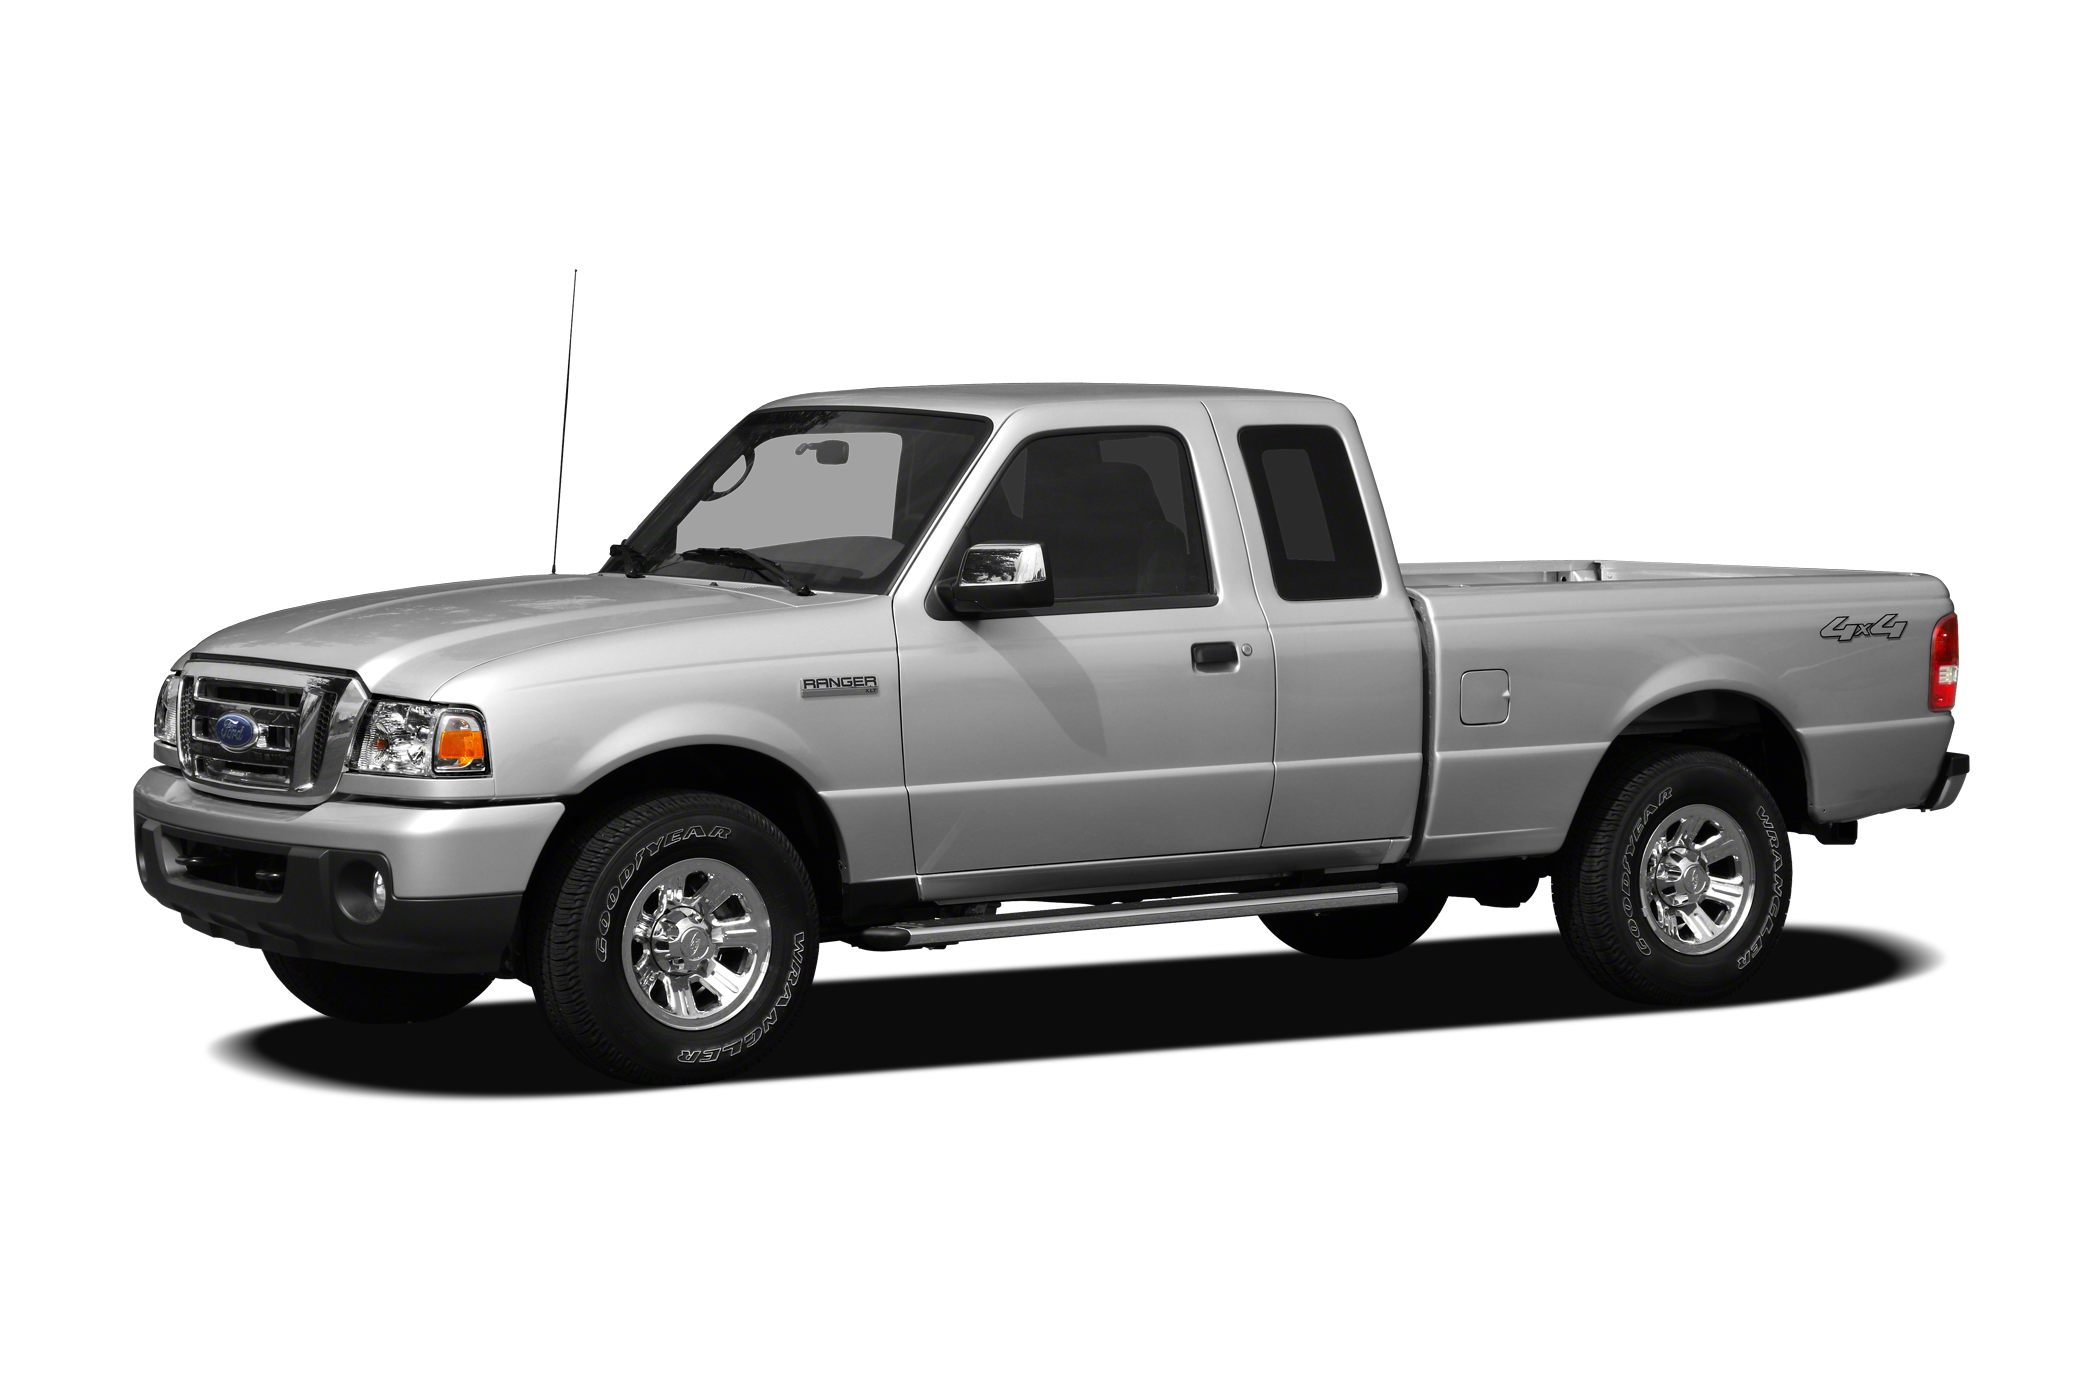 2011 Ford Ranger  4X4 SUPERCAB SPORT THAT IS SUPER CLEAN IN AND OUT 45 POINT INSPECTION  60